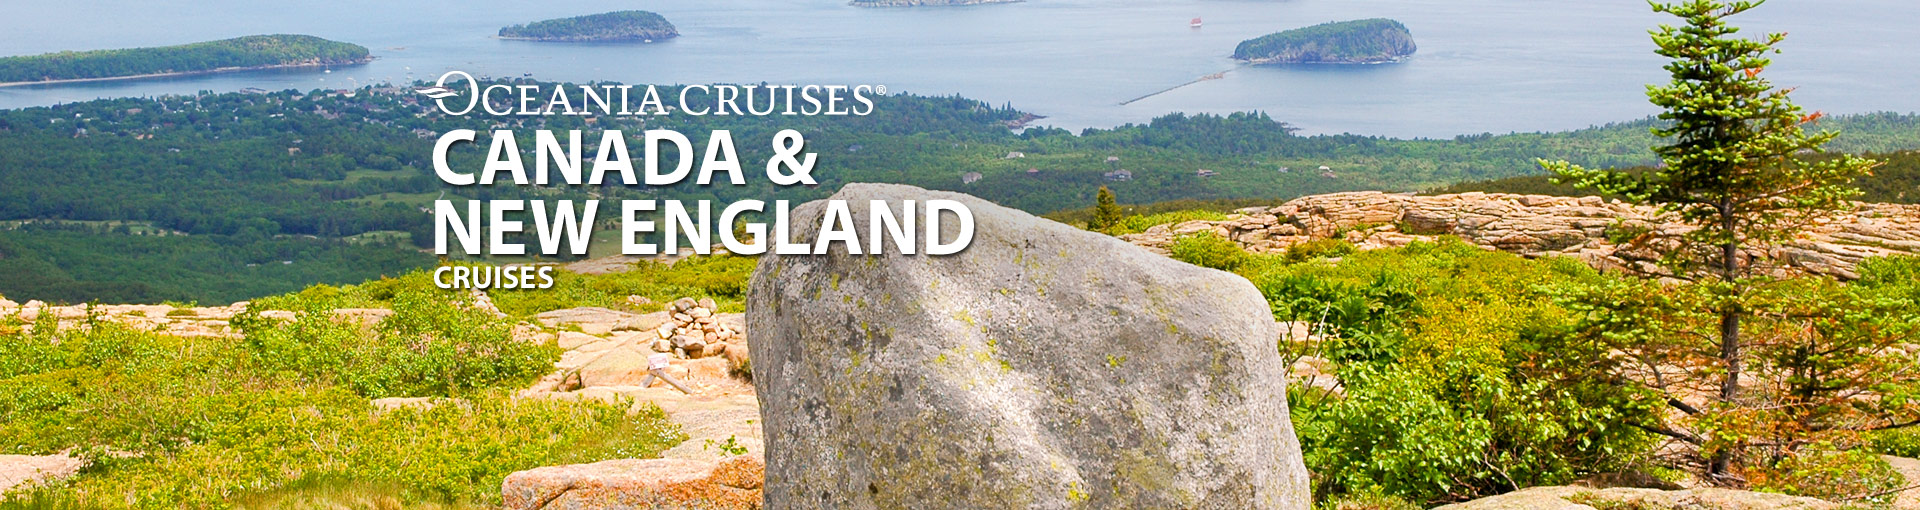 Oceania Cruises to Canada and New England